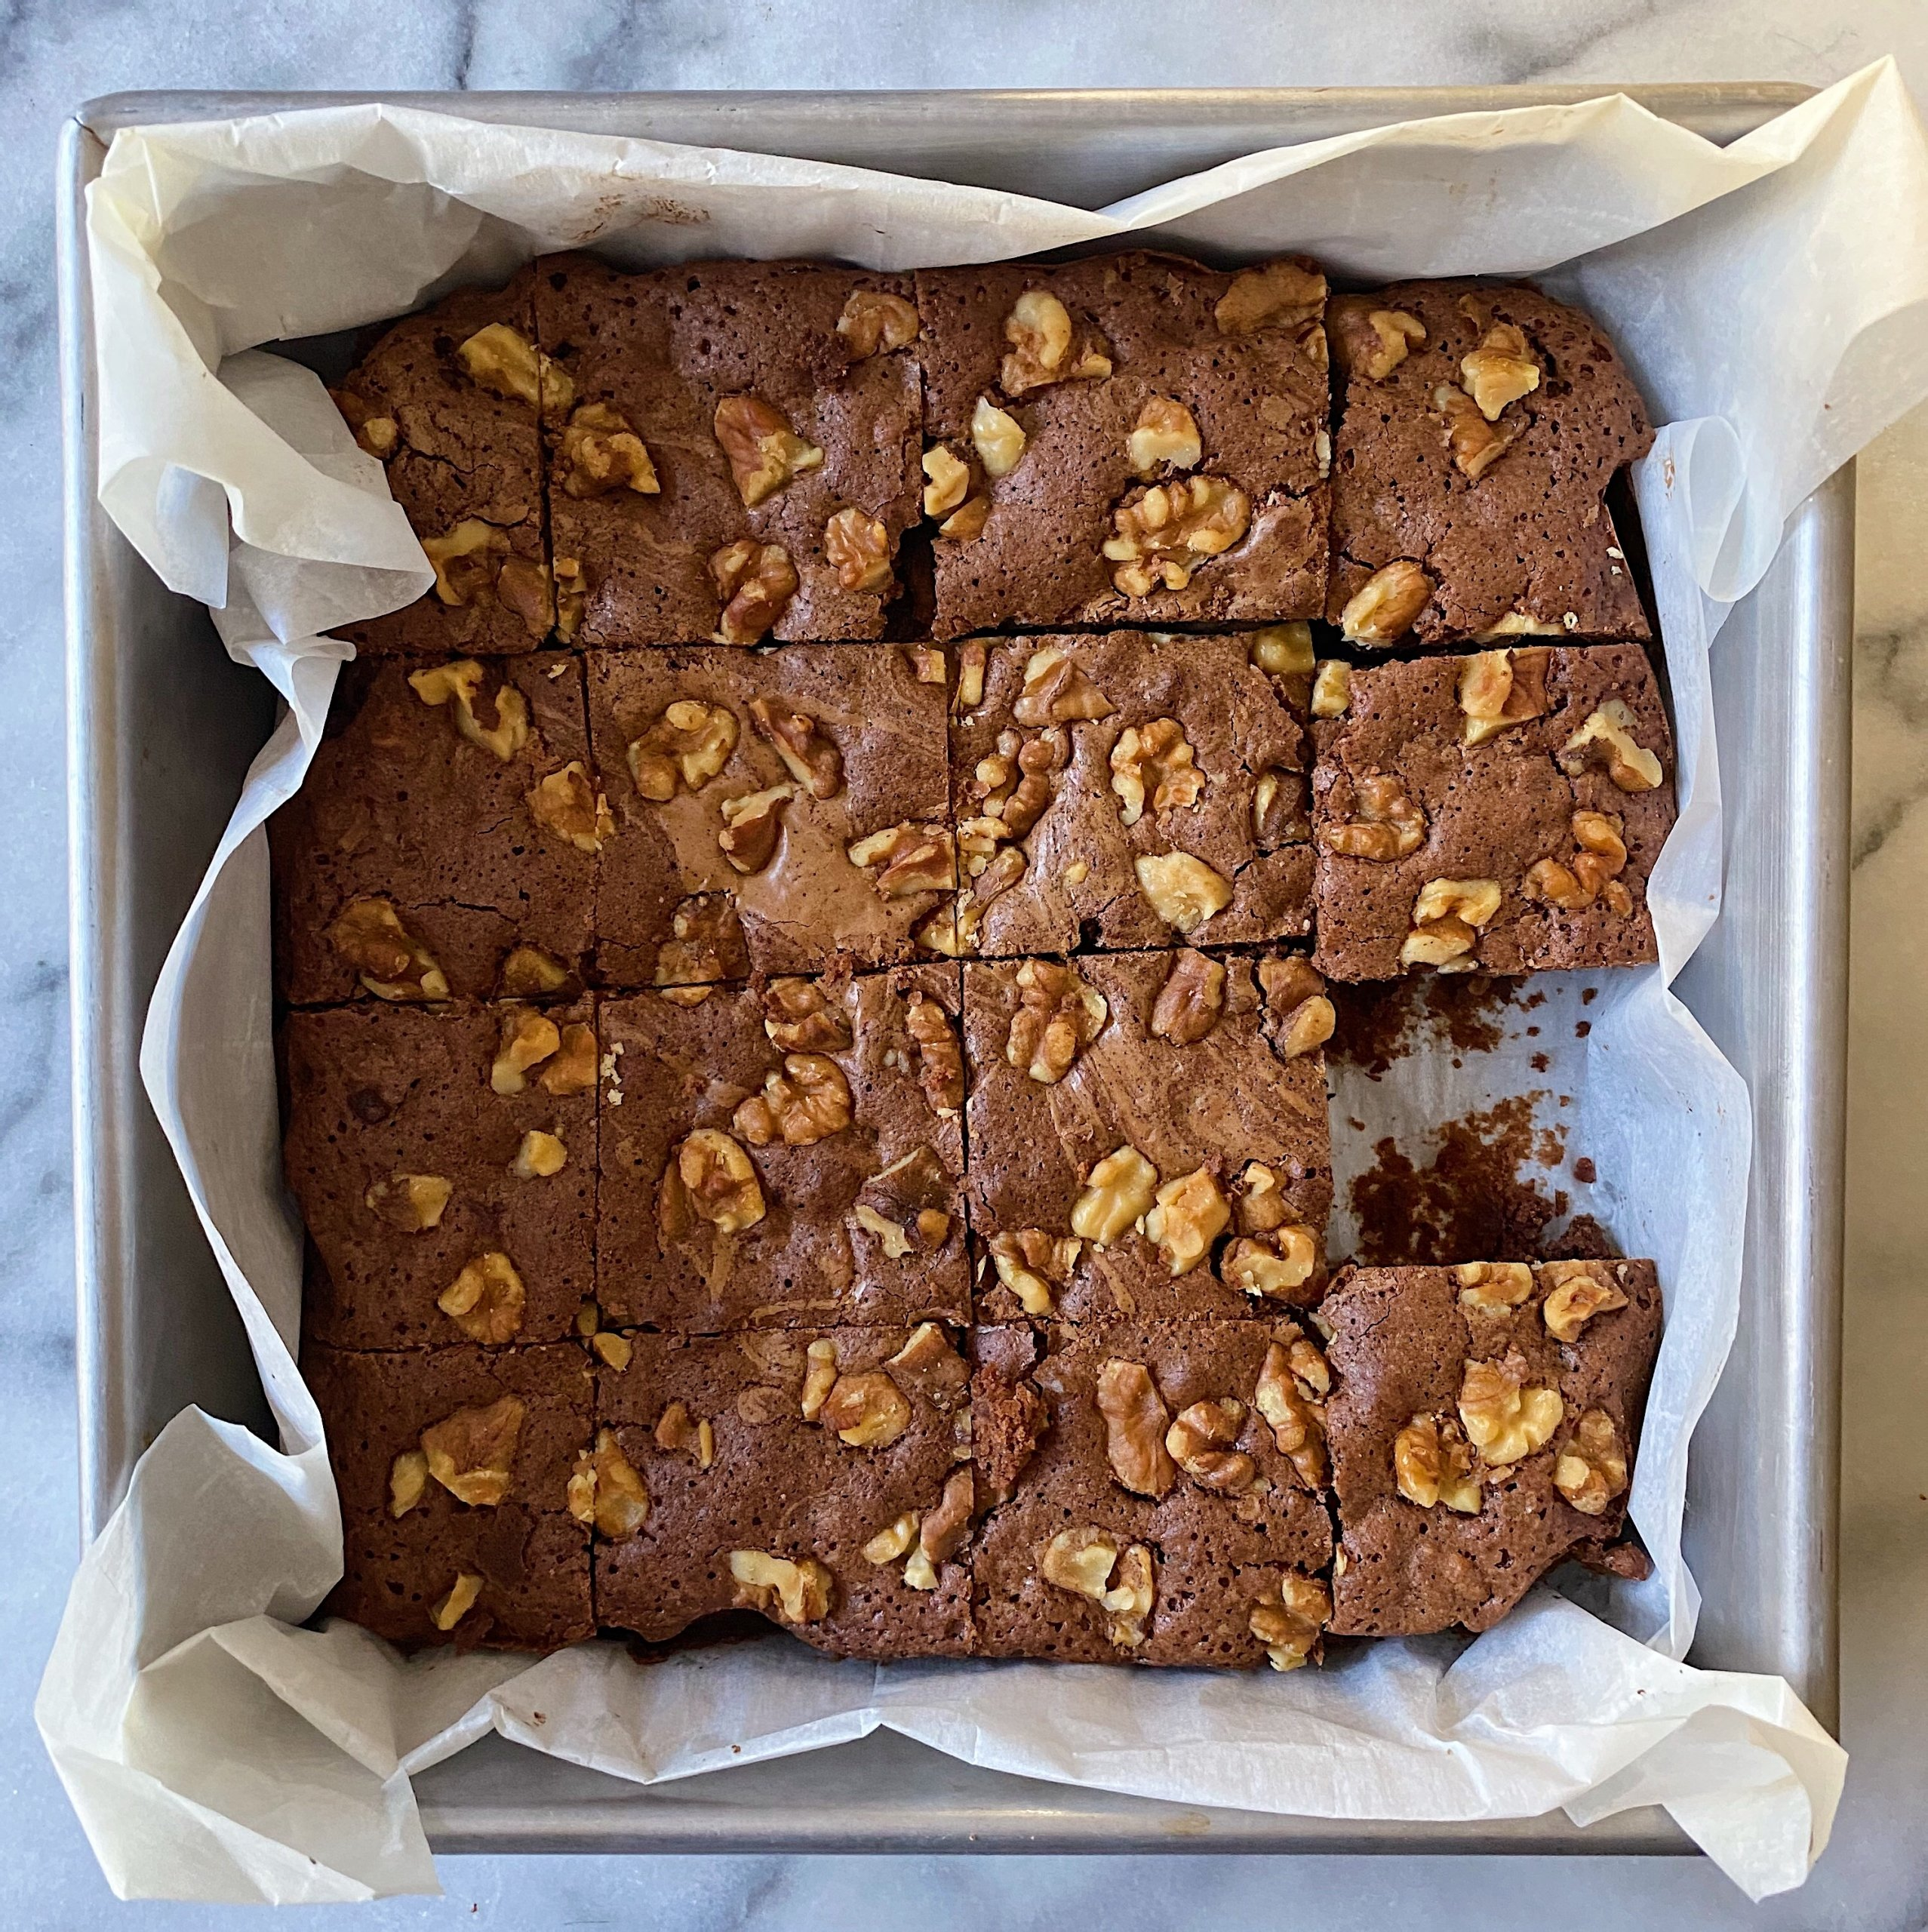 Chocolate walnut brownies gluten free #glutenfreerecipes www.healthygffamily.com